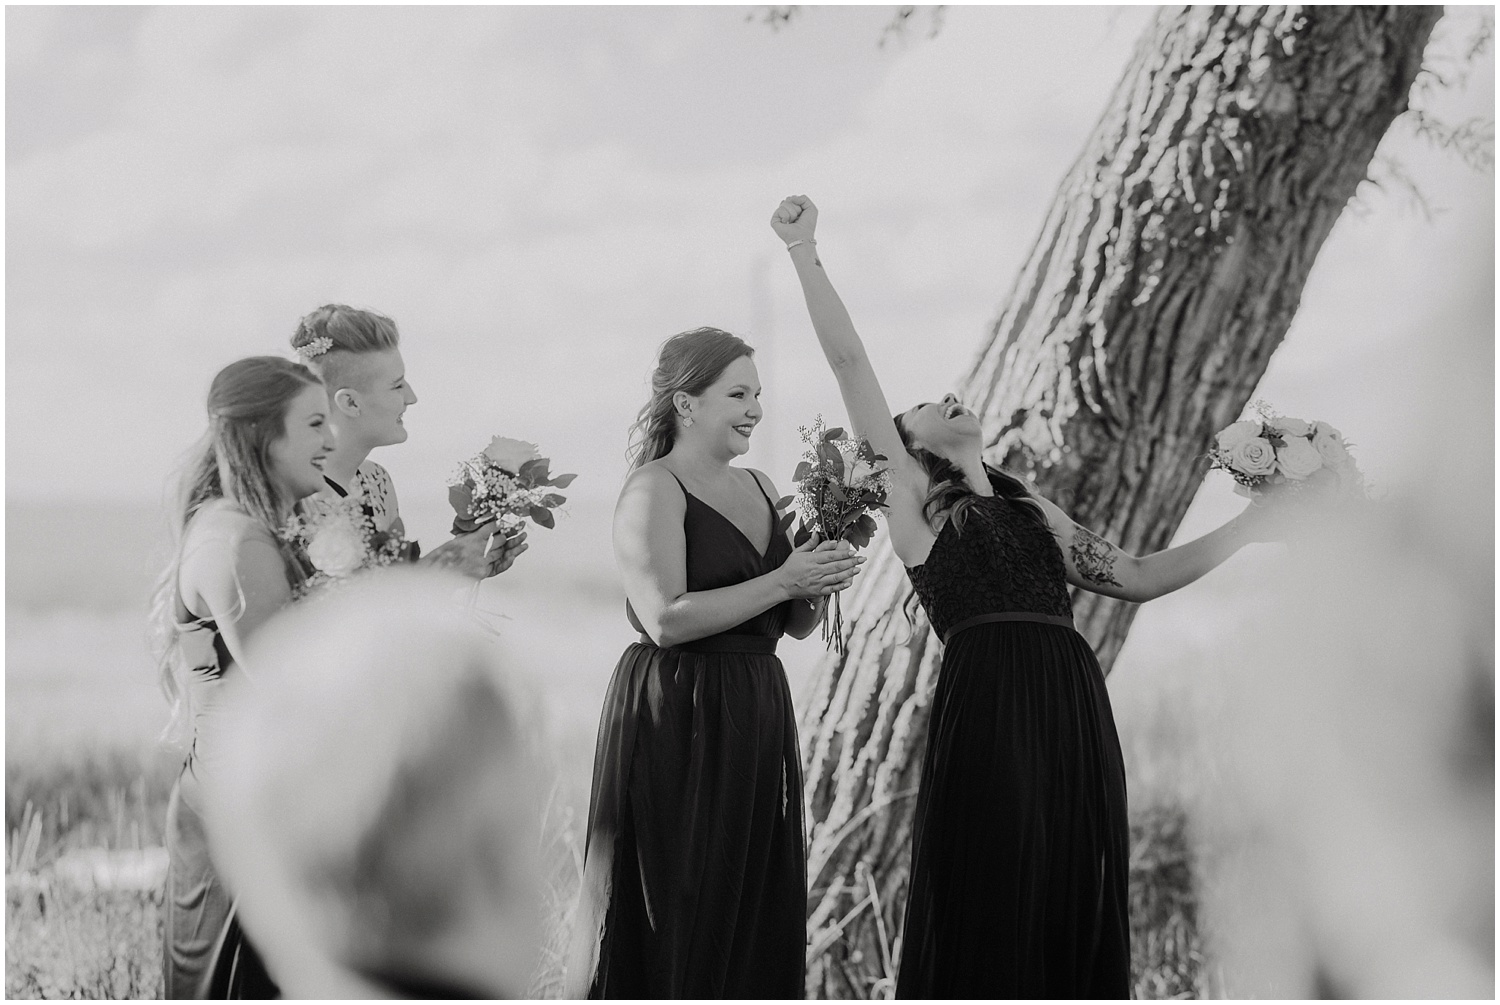 Colorado Ceremony Photographed near the Sand Dunes in Southern Colorado.